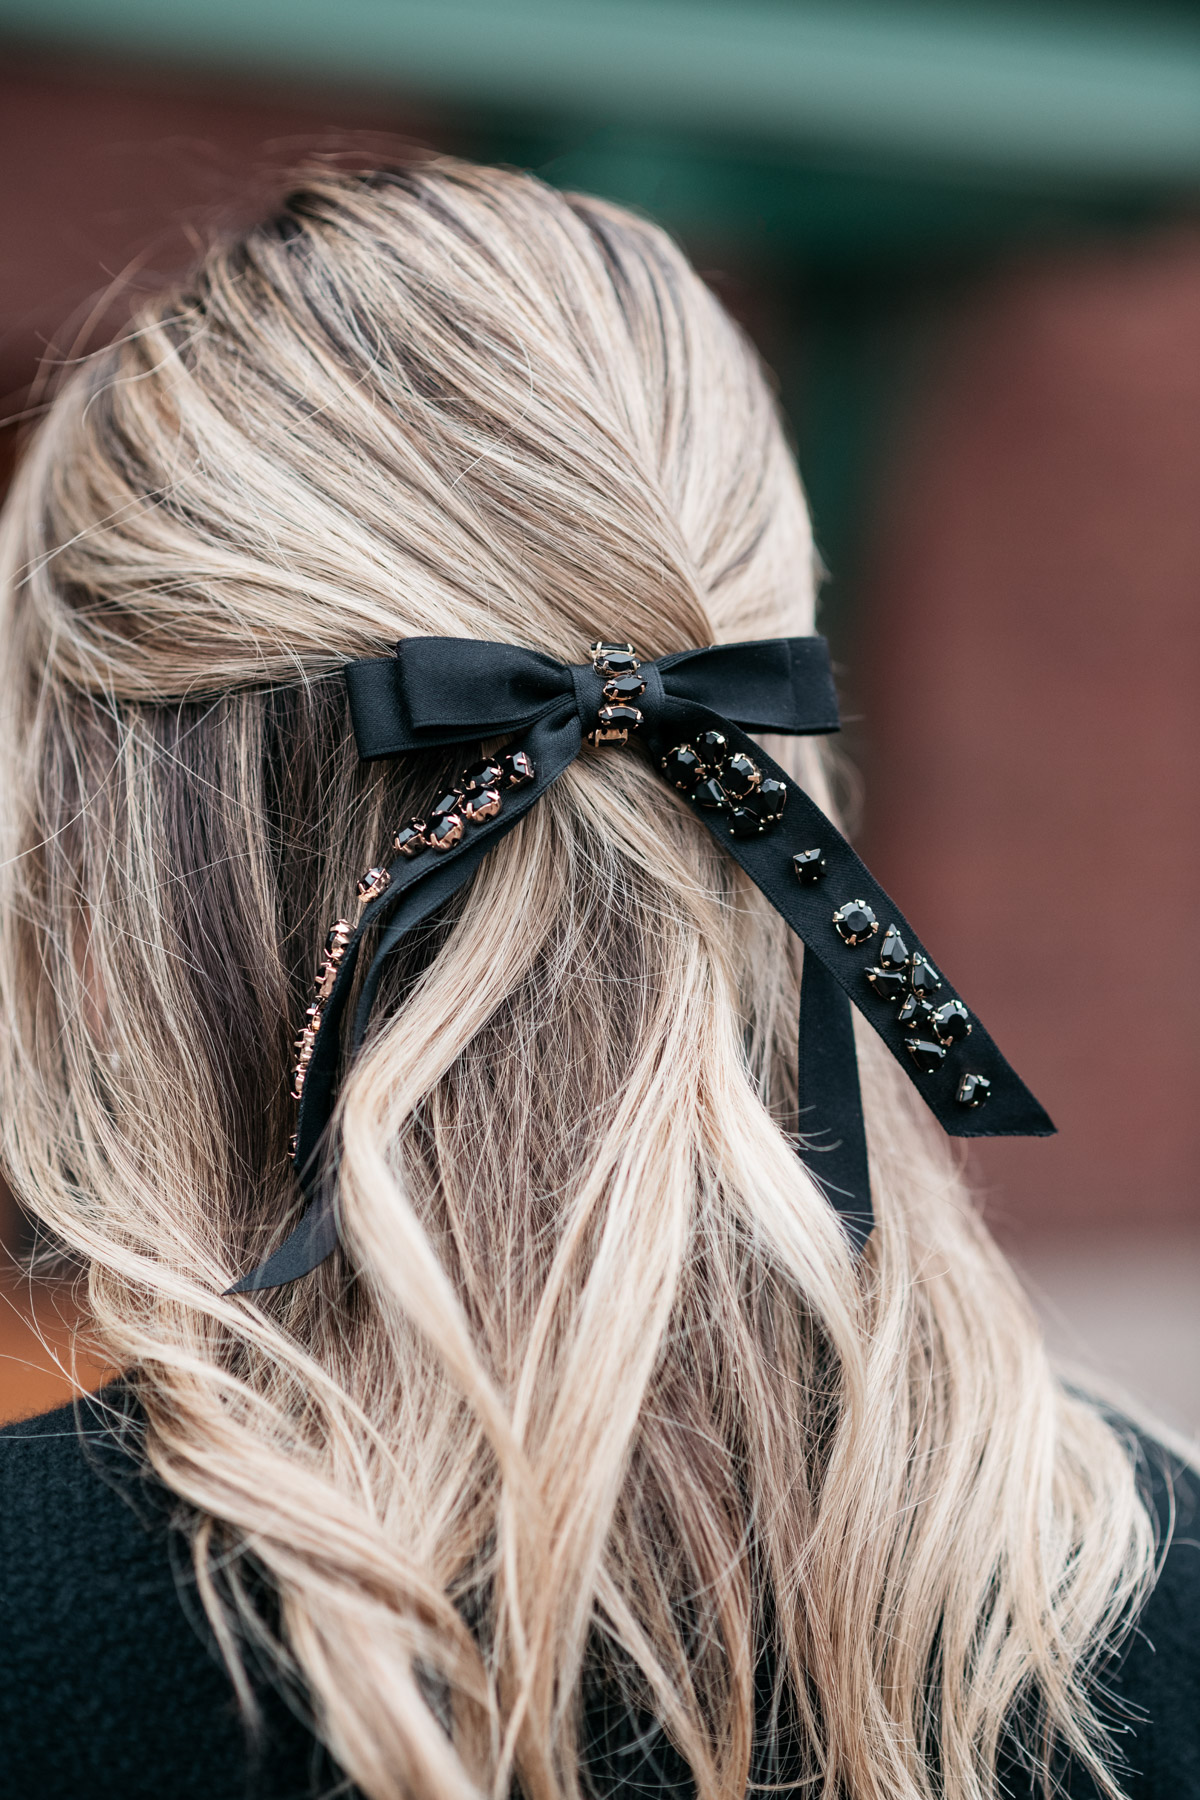 Jessica Sturdy wearing a black jeweled hair bow from J.Crew.